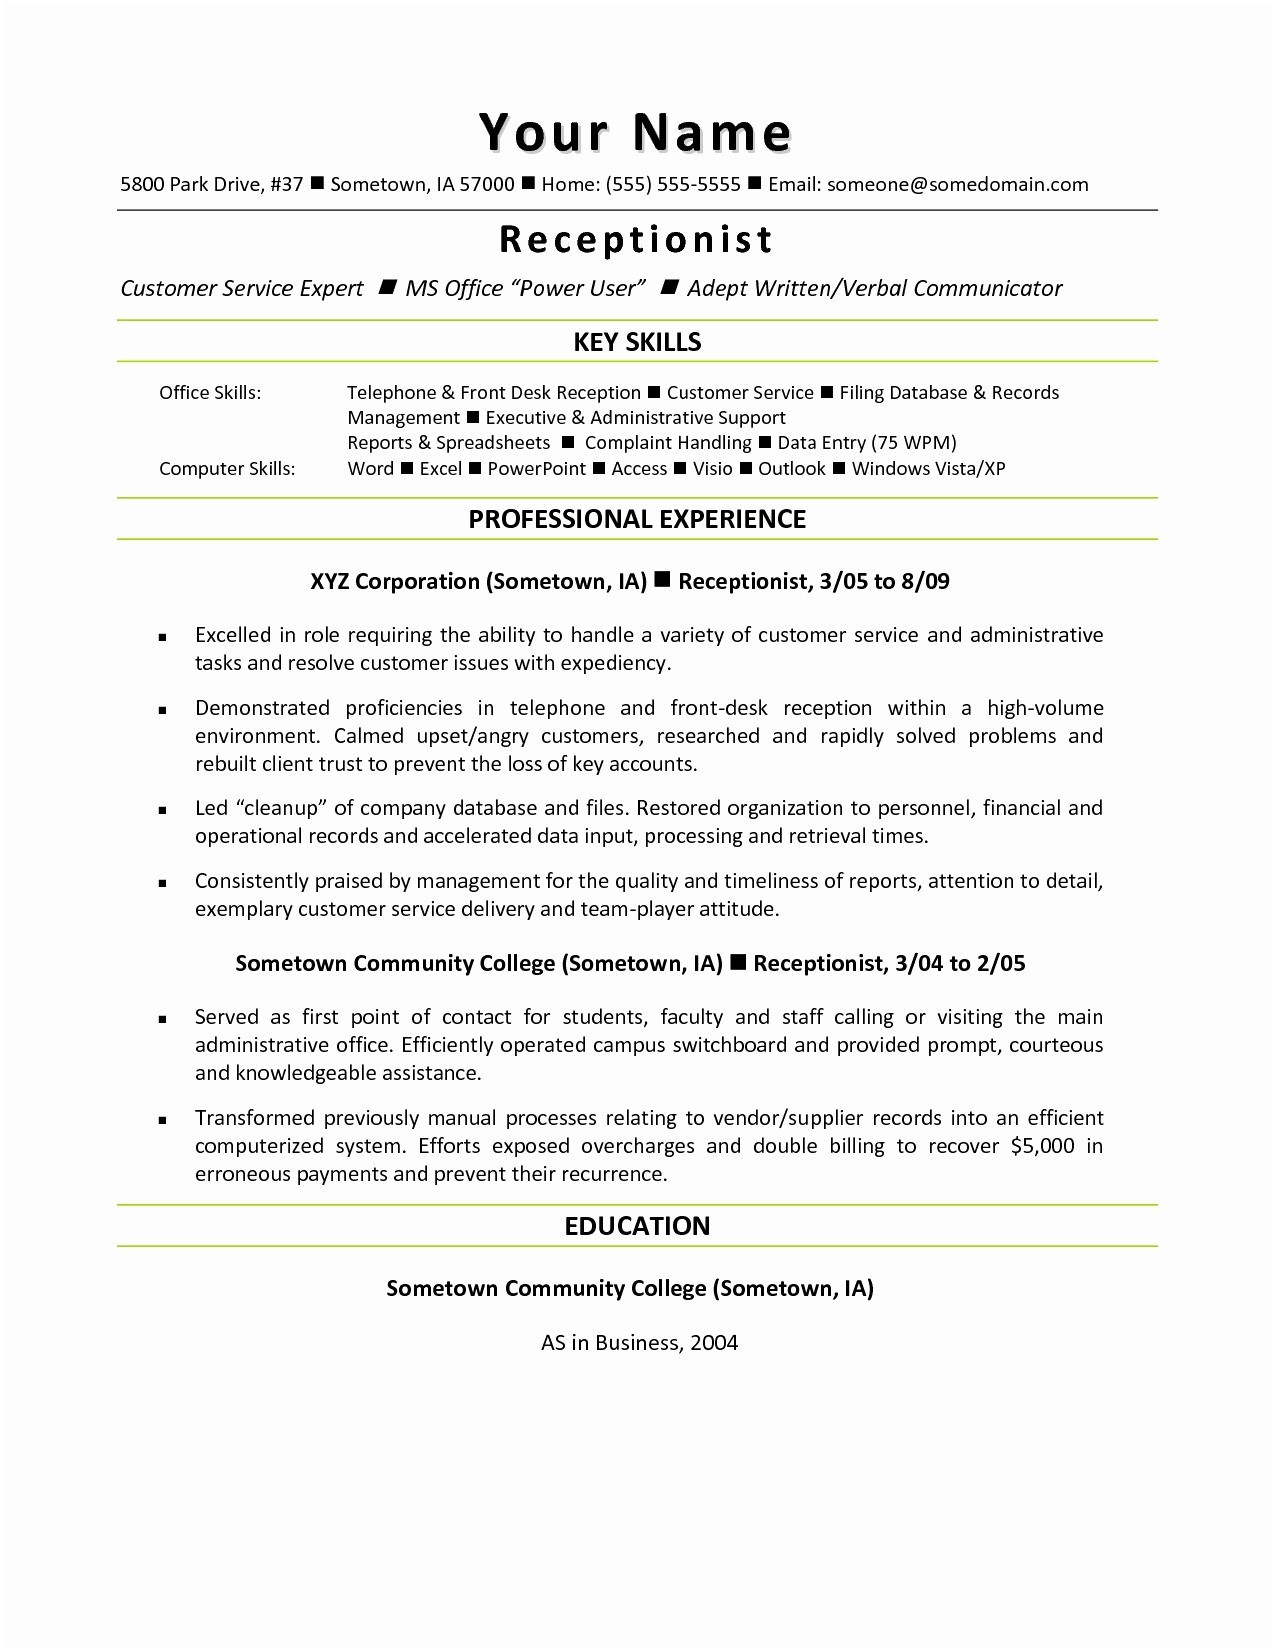 microsoft word resume cover letter template example-Resume Microsoft Word Fresh Resume Mail Format Sample Fresh Beautiful Od Consultant Cover Letter Information 8-r